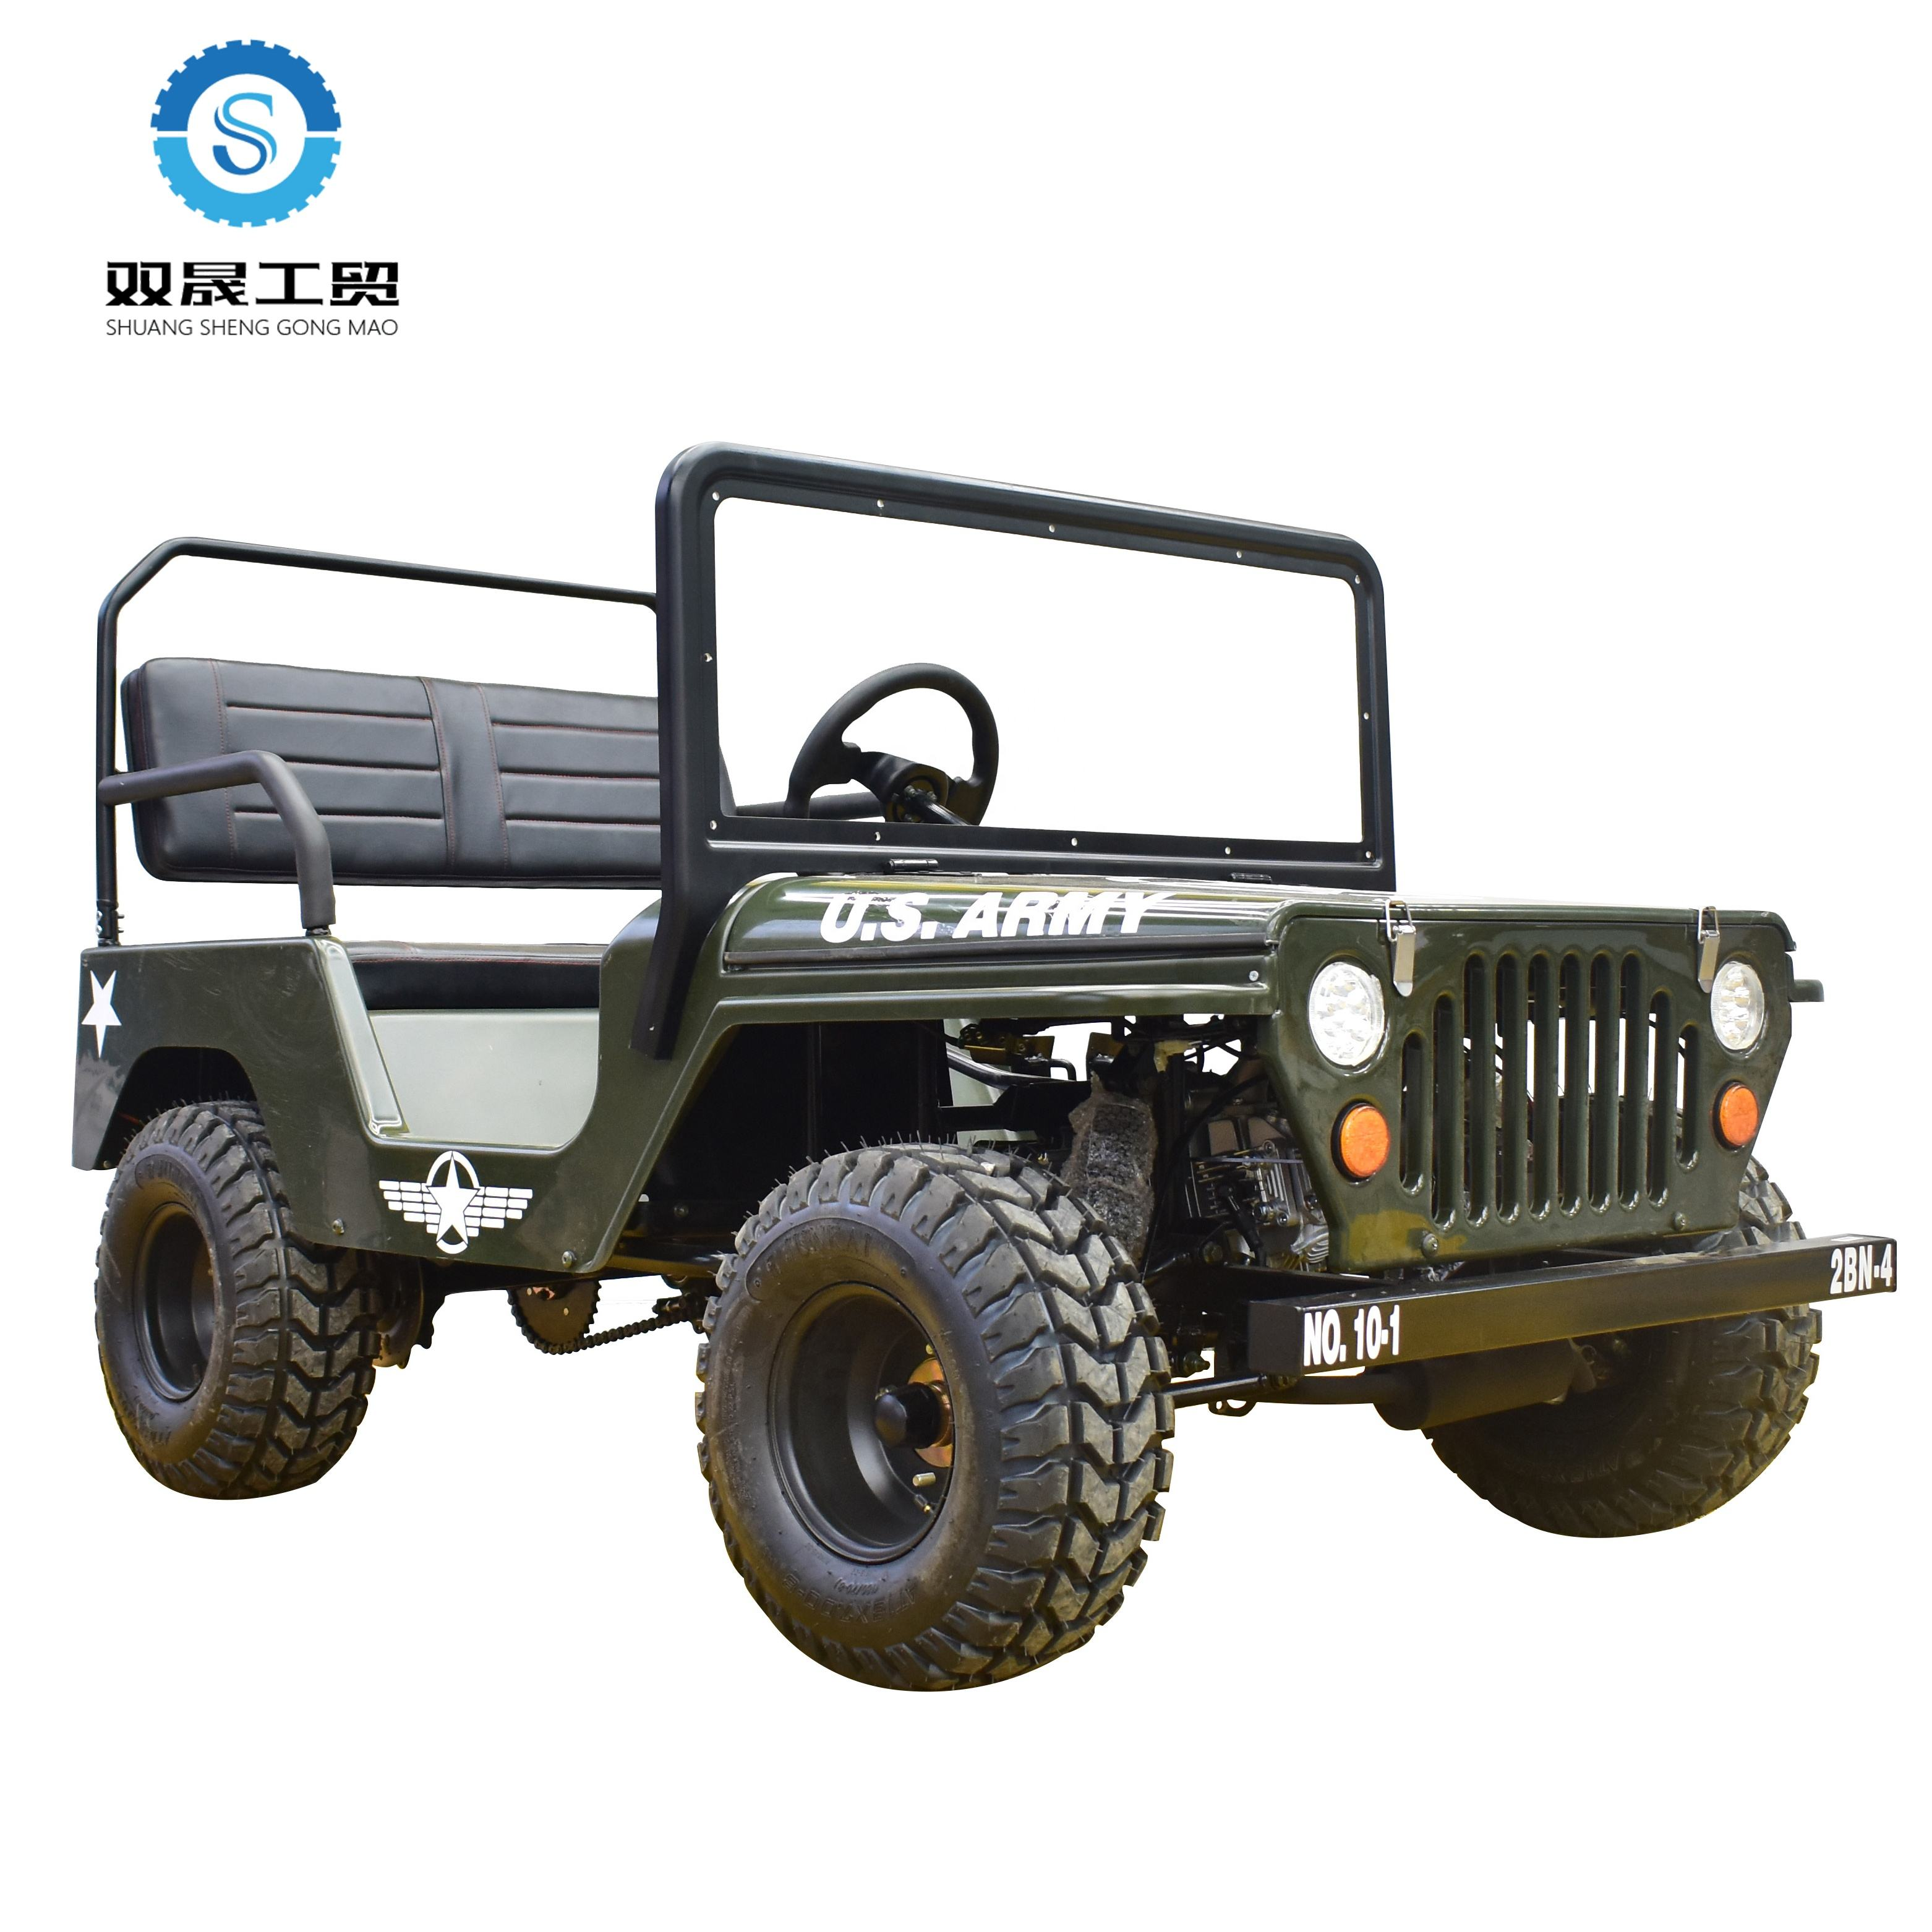 2019 nuovo bello stile <span class=keywords><strong>110cc</strong></span> quad bike dune buggy spiaggia buggy <span class=keywords><strong>mini</strong></span> <span class=keywords><strong>jeep</strong></span> willys per adulti